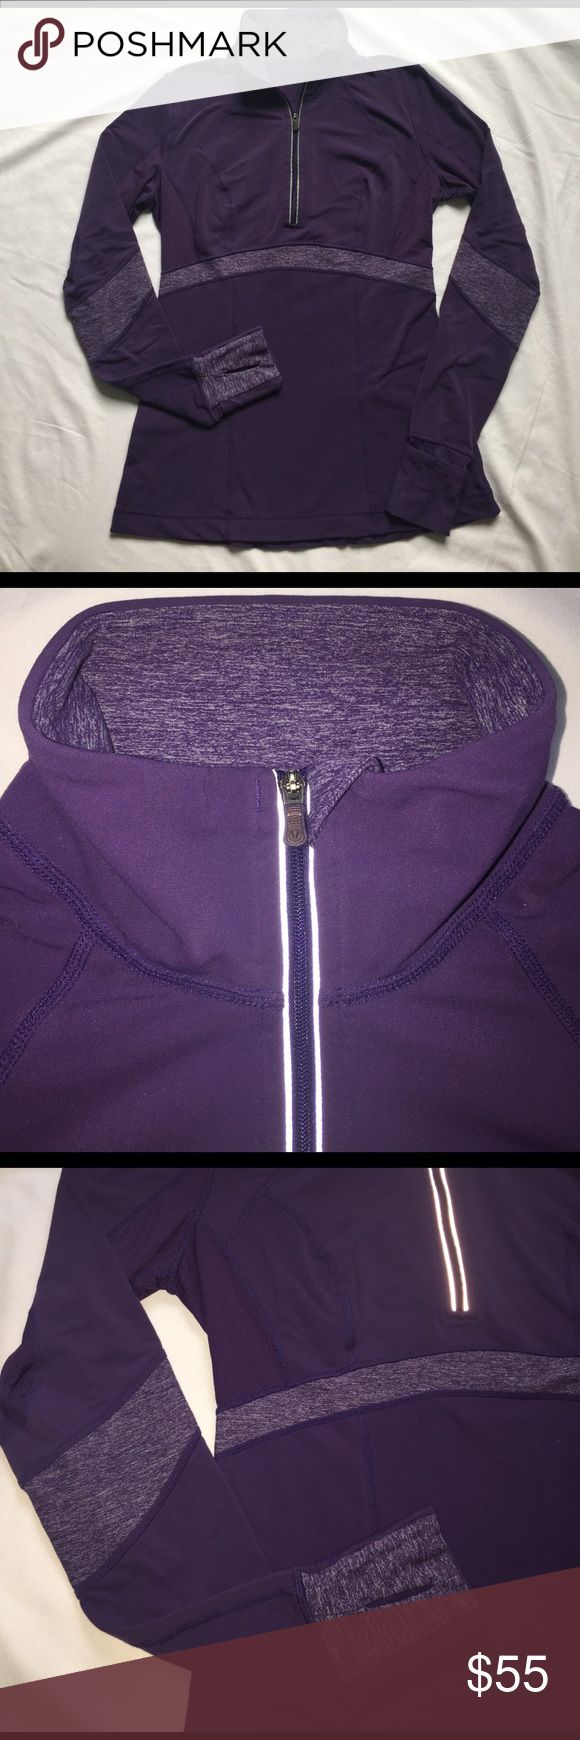 Lululemon Run Distance Pullover Purple Crush 8 Preowned condition. I'm no longer an 8, too big. Pls. Note left underarm  mesh starting to wear away. Body-skimming midlayer, Wicking, thermal, super-stretch, tech fleece is brushed on the inside. Body-mapping with anti-stick circle mesh, Cuffins w/thumbholes Measurements (when lying flat, unstretched) -Shoulders: 14.75 in, Bust: 18 in, Waist: 15.25 in, Hem: 19.5 in, Length (from shoulder): 24.75 in. Length (from neck top): 28.75 in  -Sleeve…